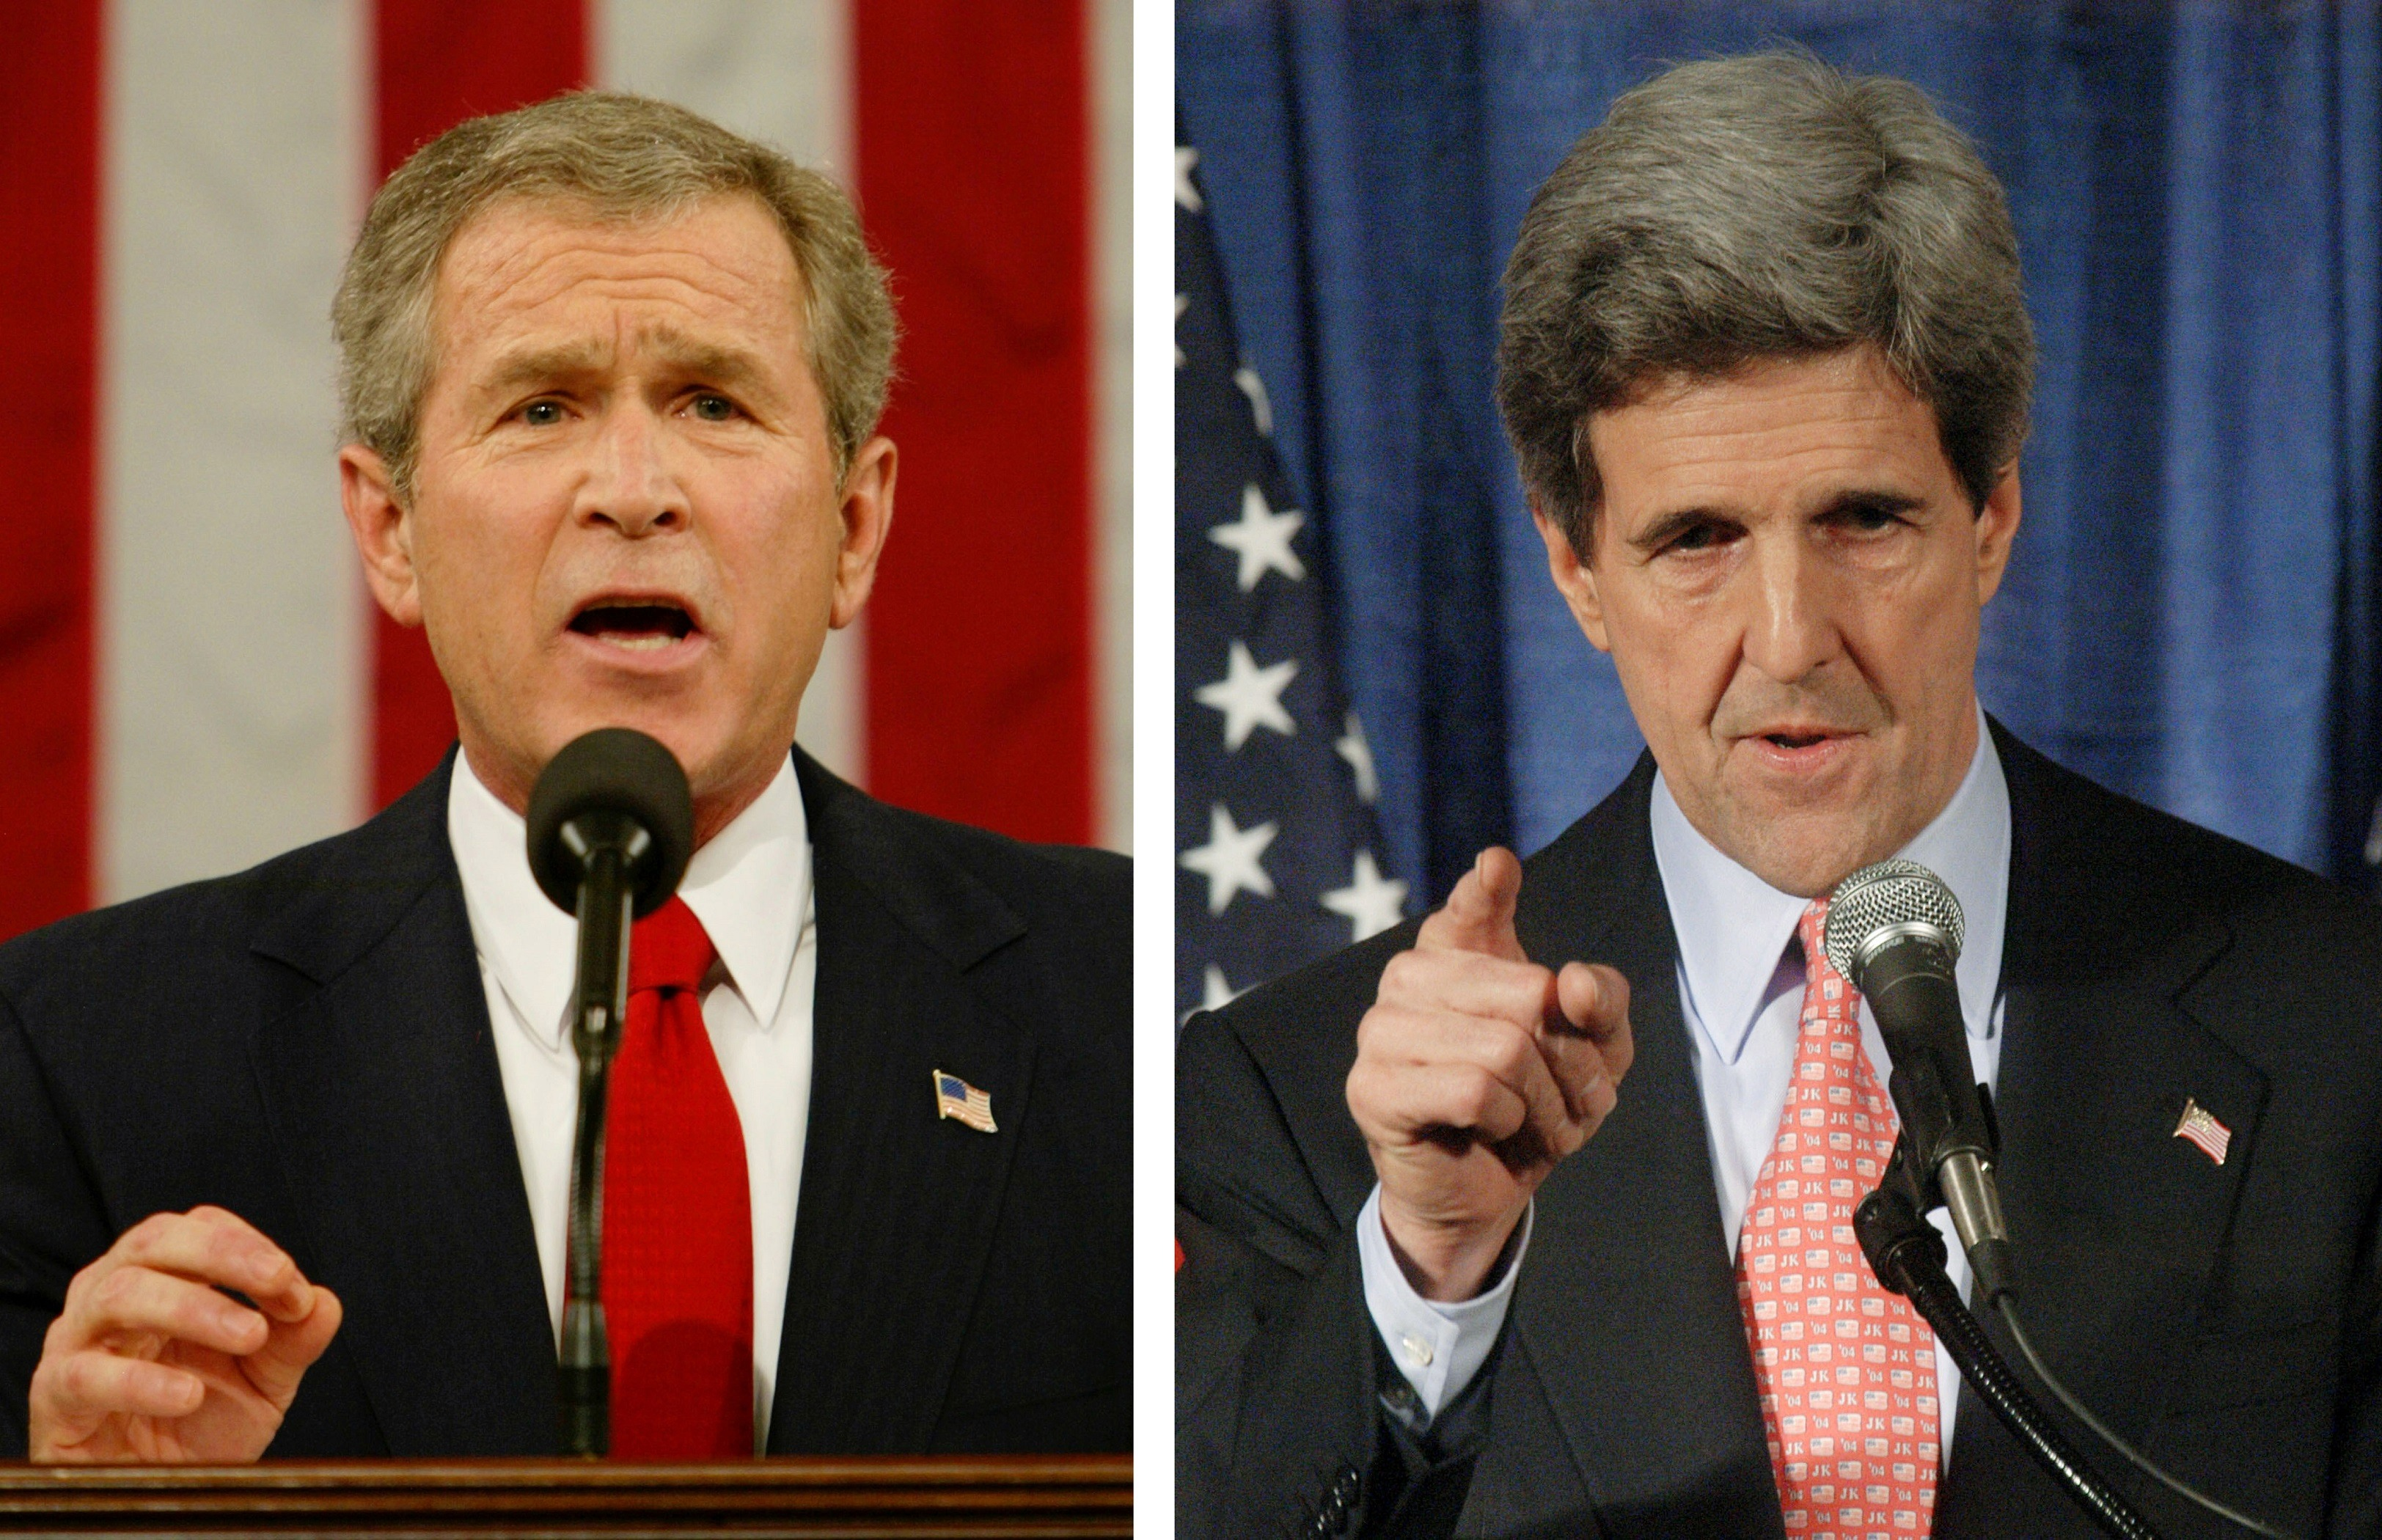 George W Bush v John Kerry